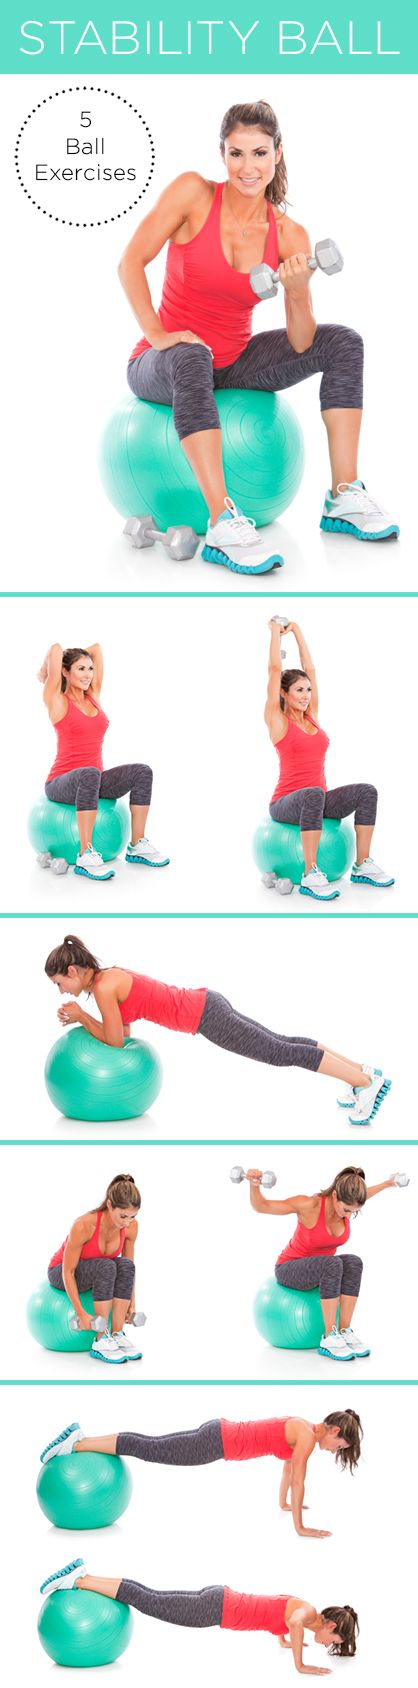 5 Stability Ball Exercises